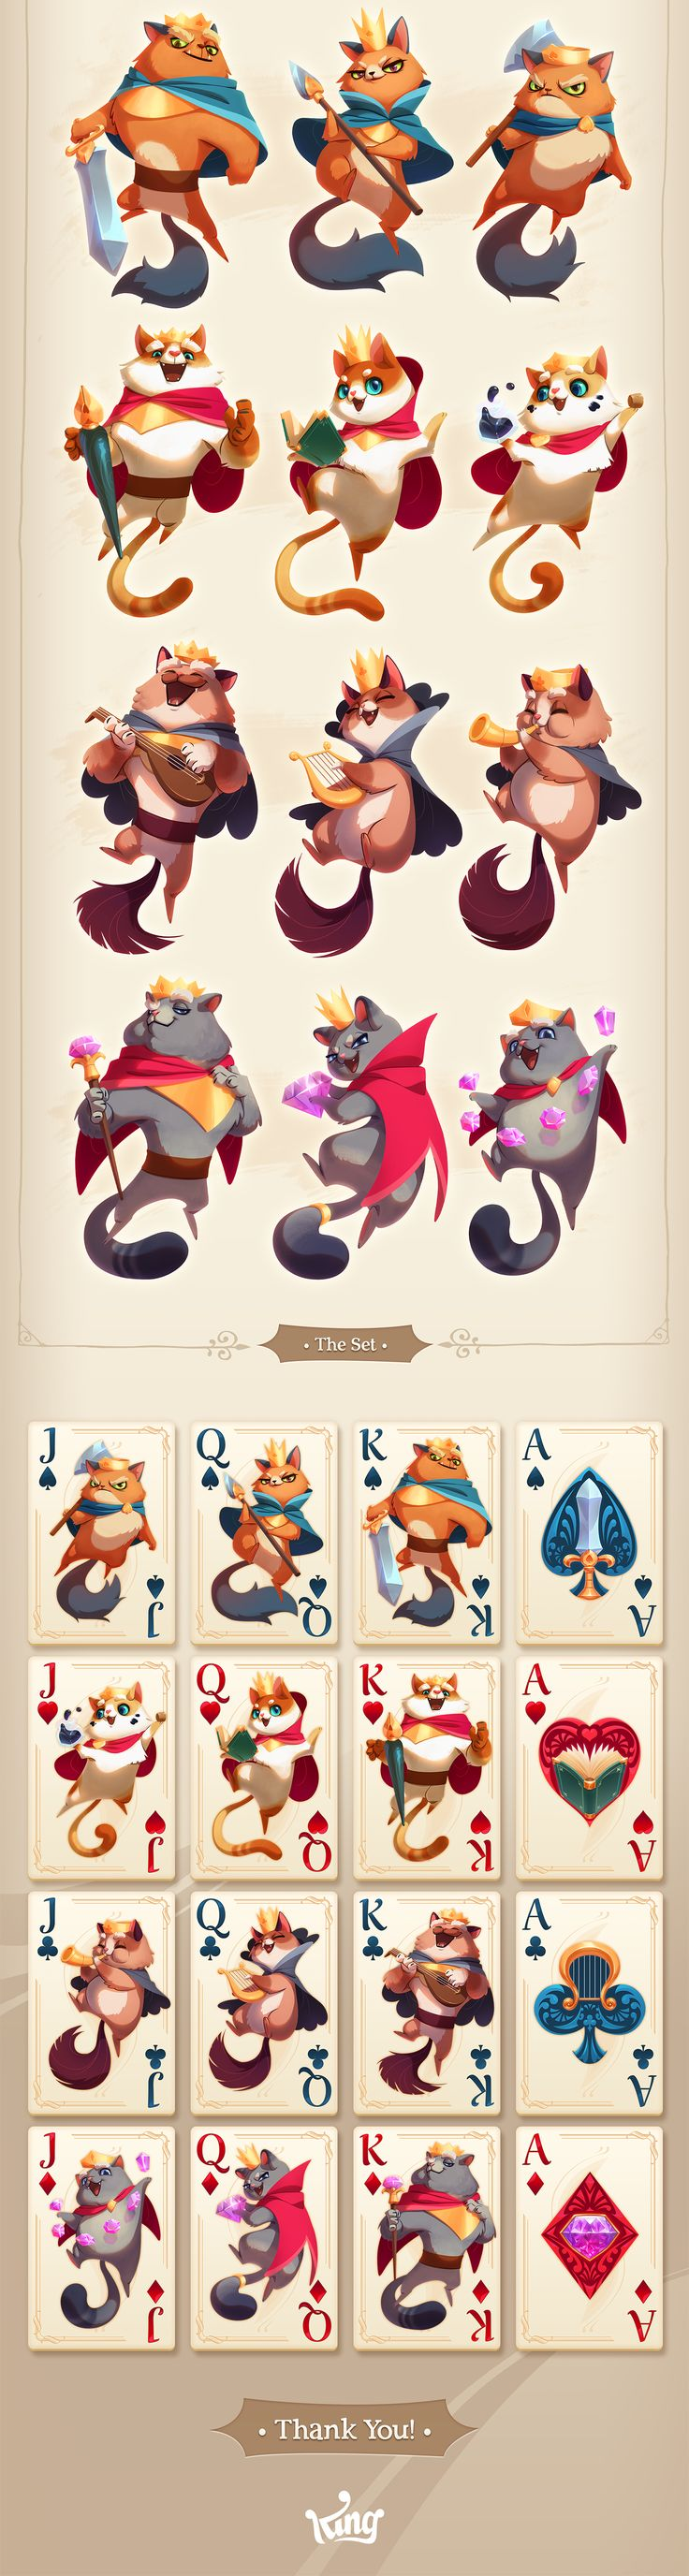 Card art work process -  this went through a long iteration haha, this was one of the original ideas that stayed till the end.